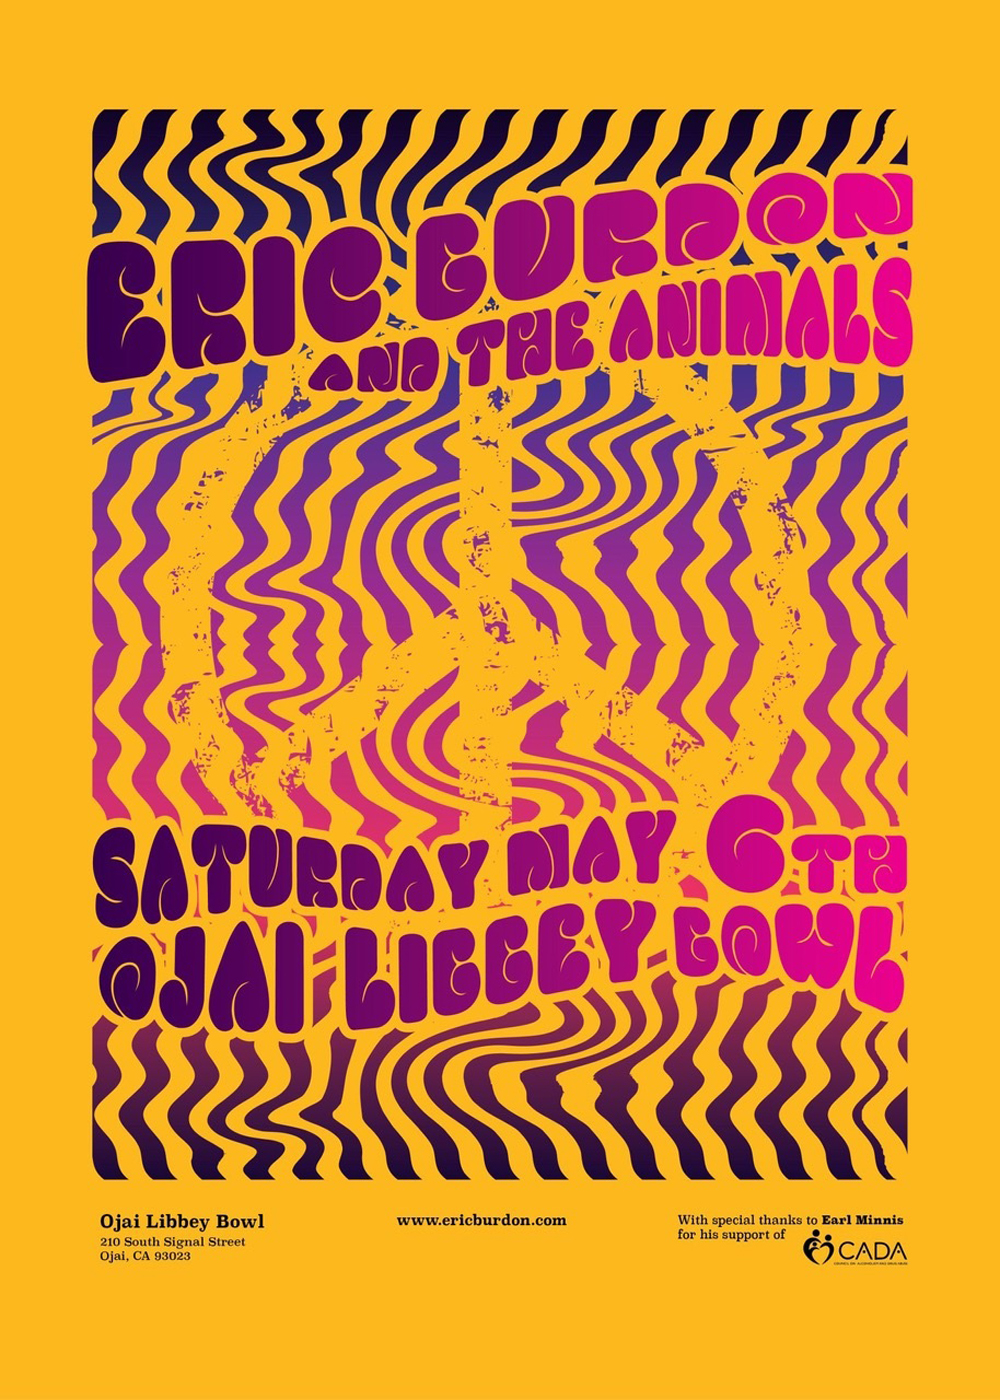 Eric Burdon and The Animals reigned from 1963 to 1969.